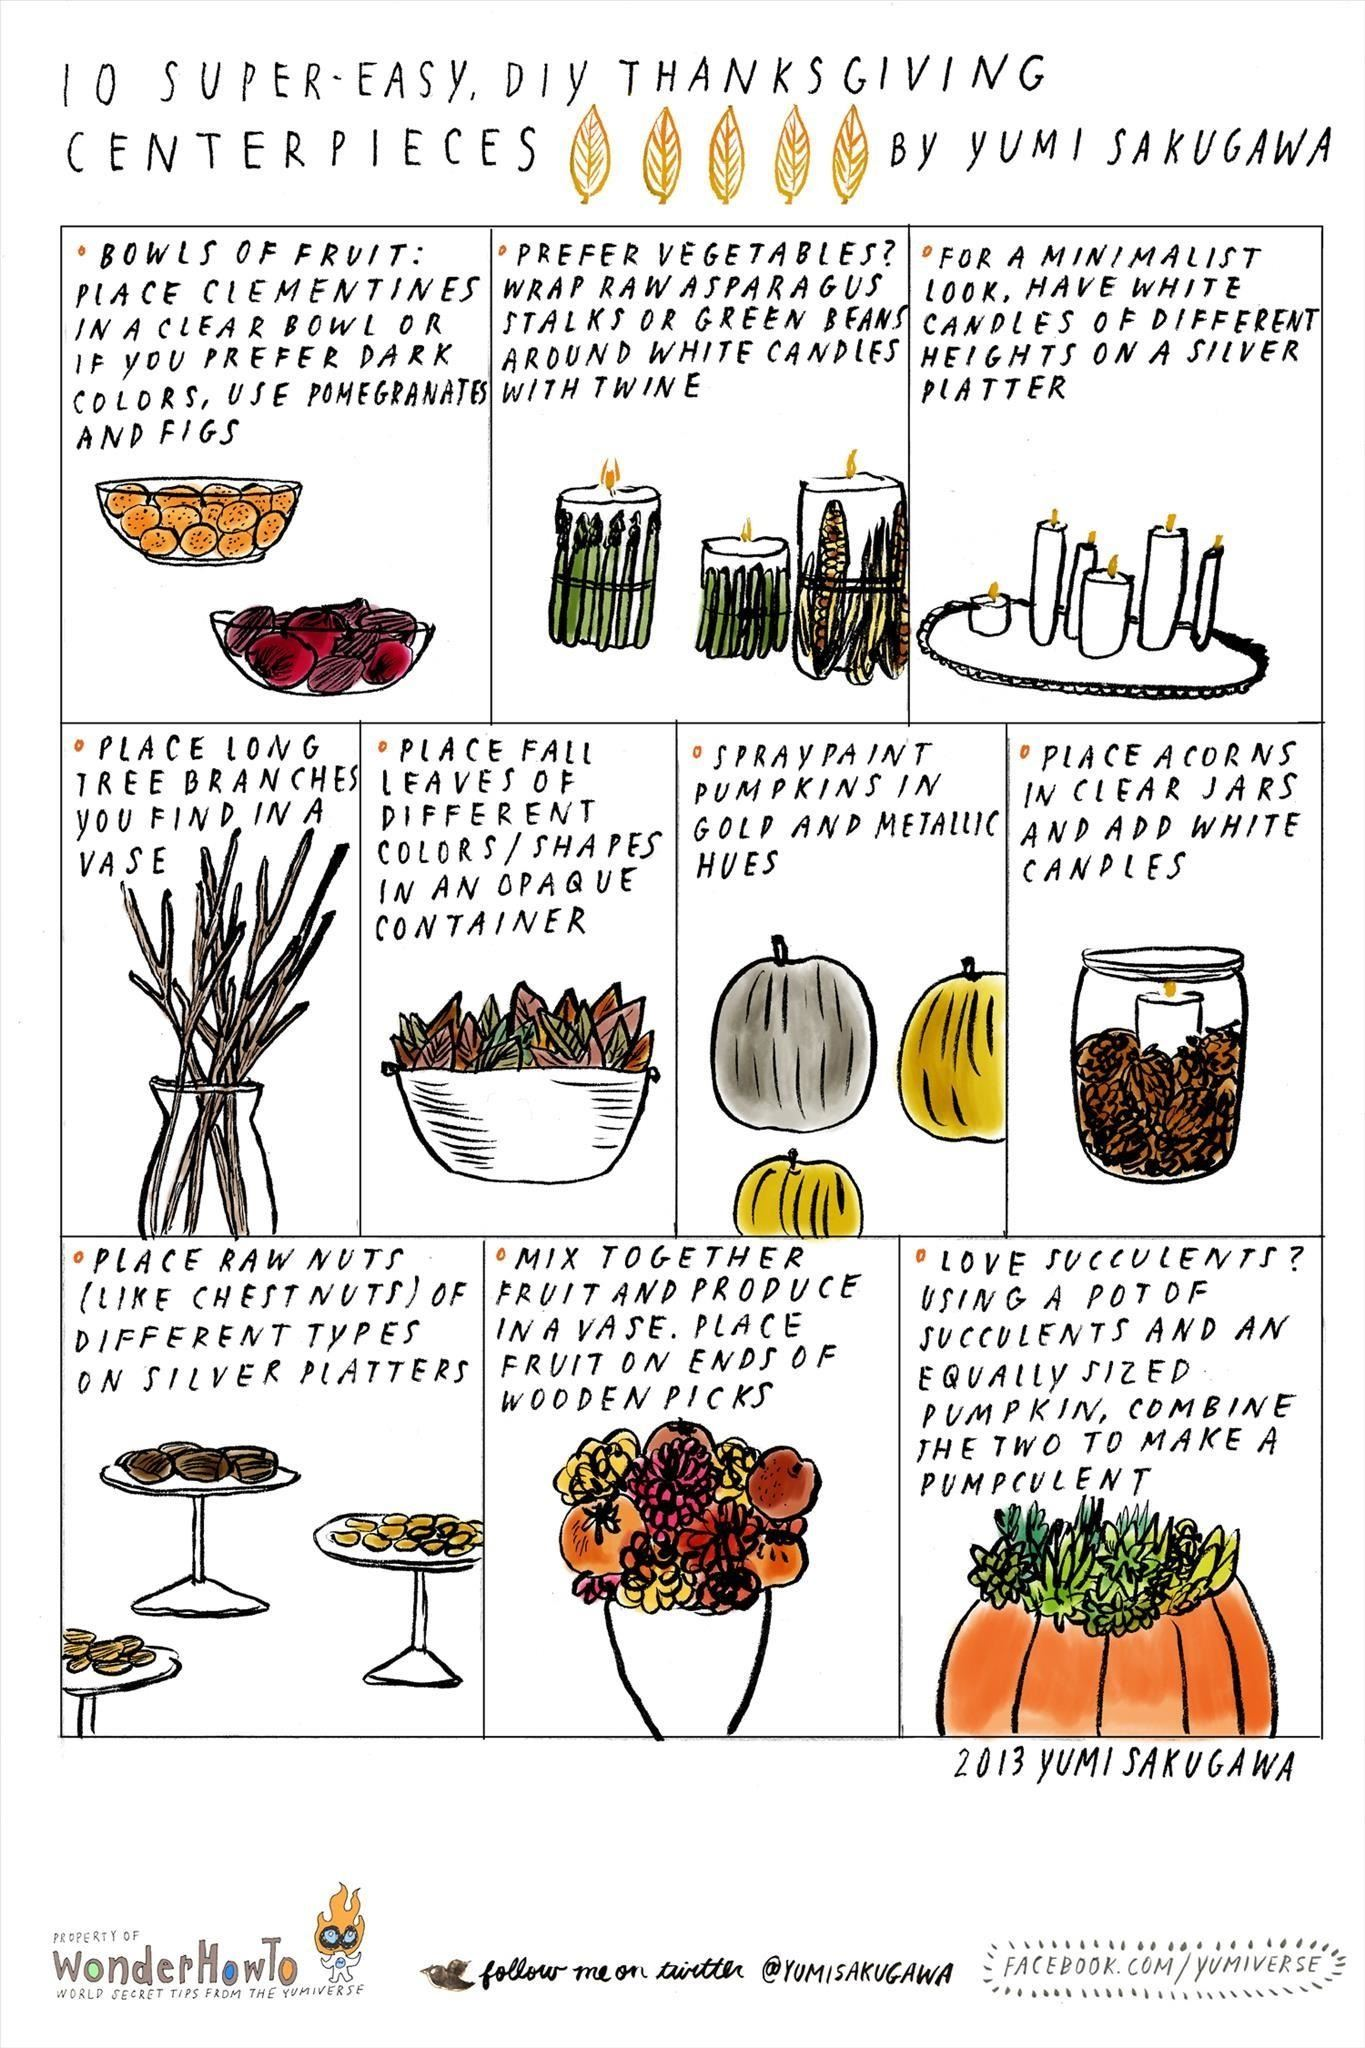 10 Beautiful, Easy-to-Make Centerpieces for Thanksgiving Dinner